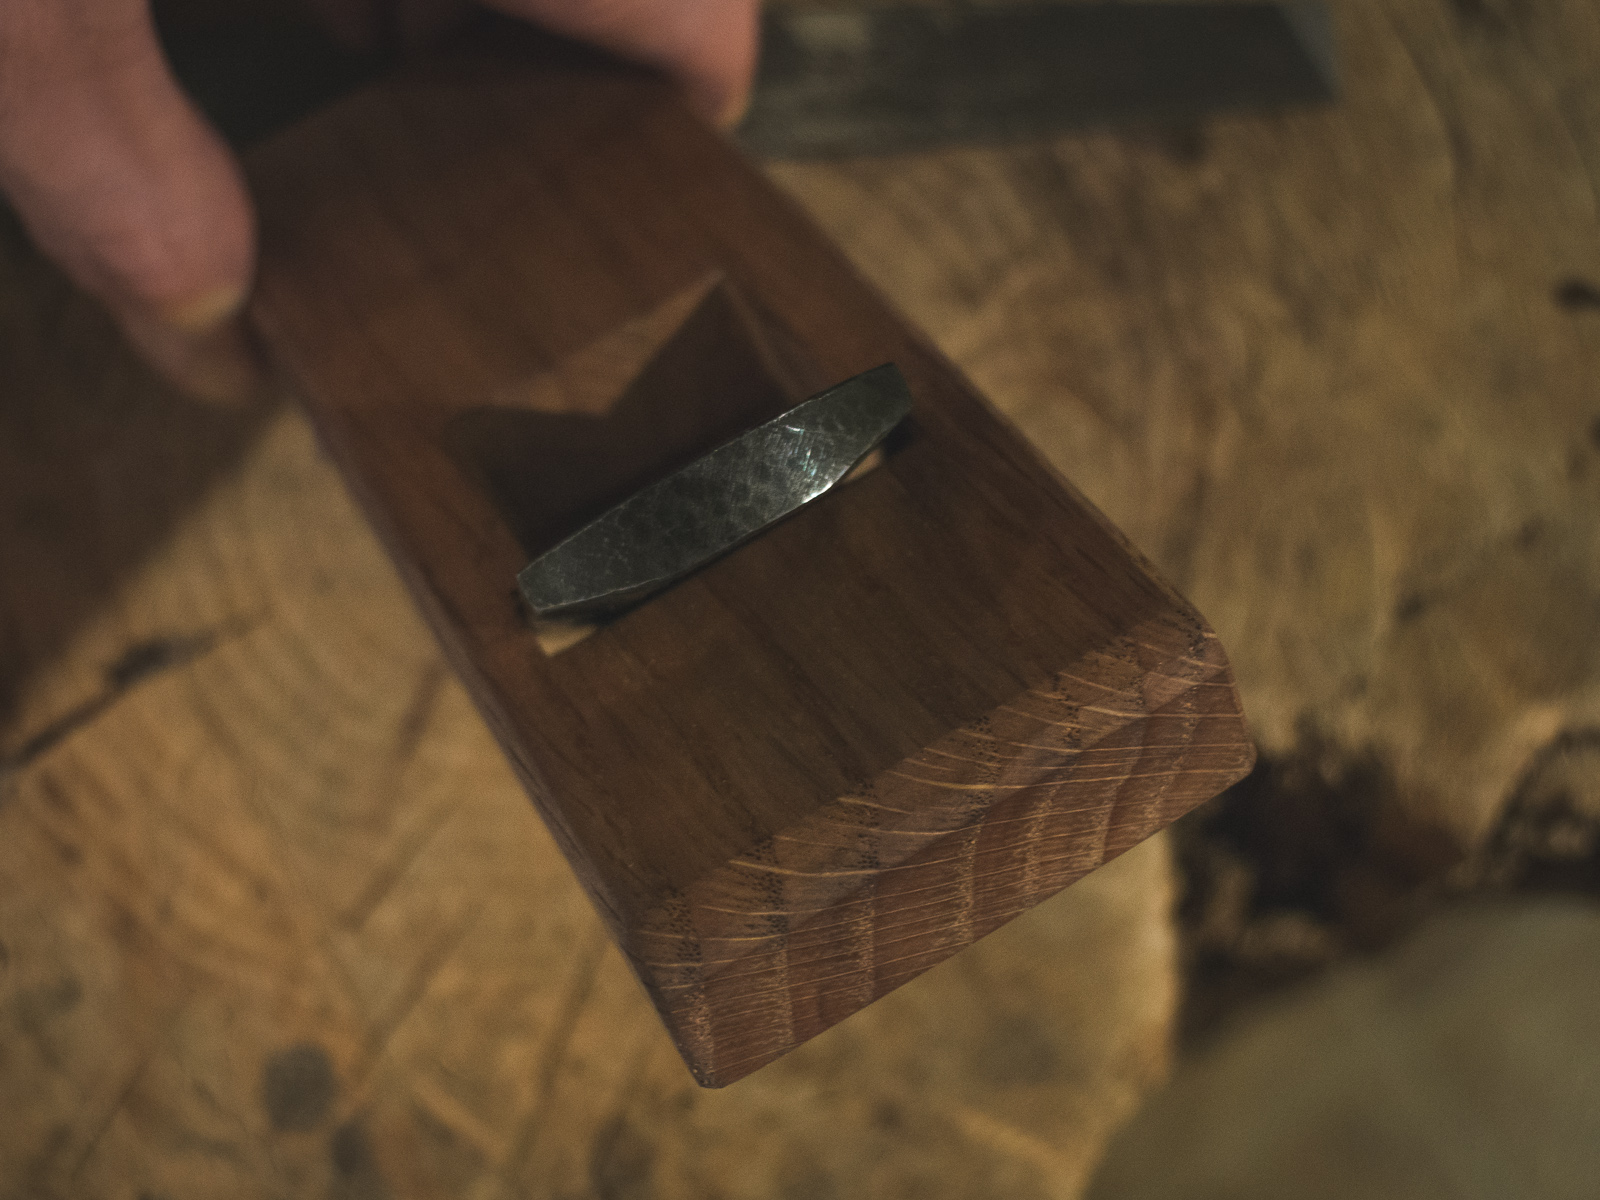 Island Blacksmith: Hand crafted tools made from reclaimed and natural materials using traditional techniques